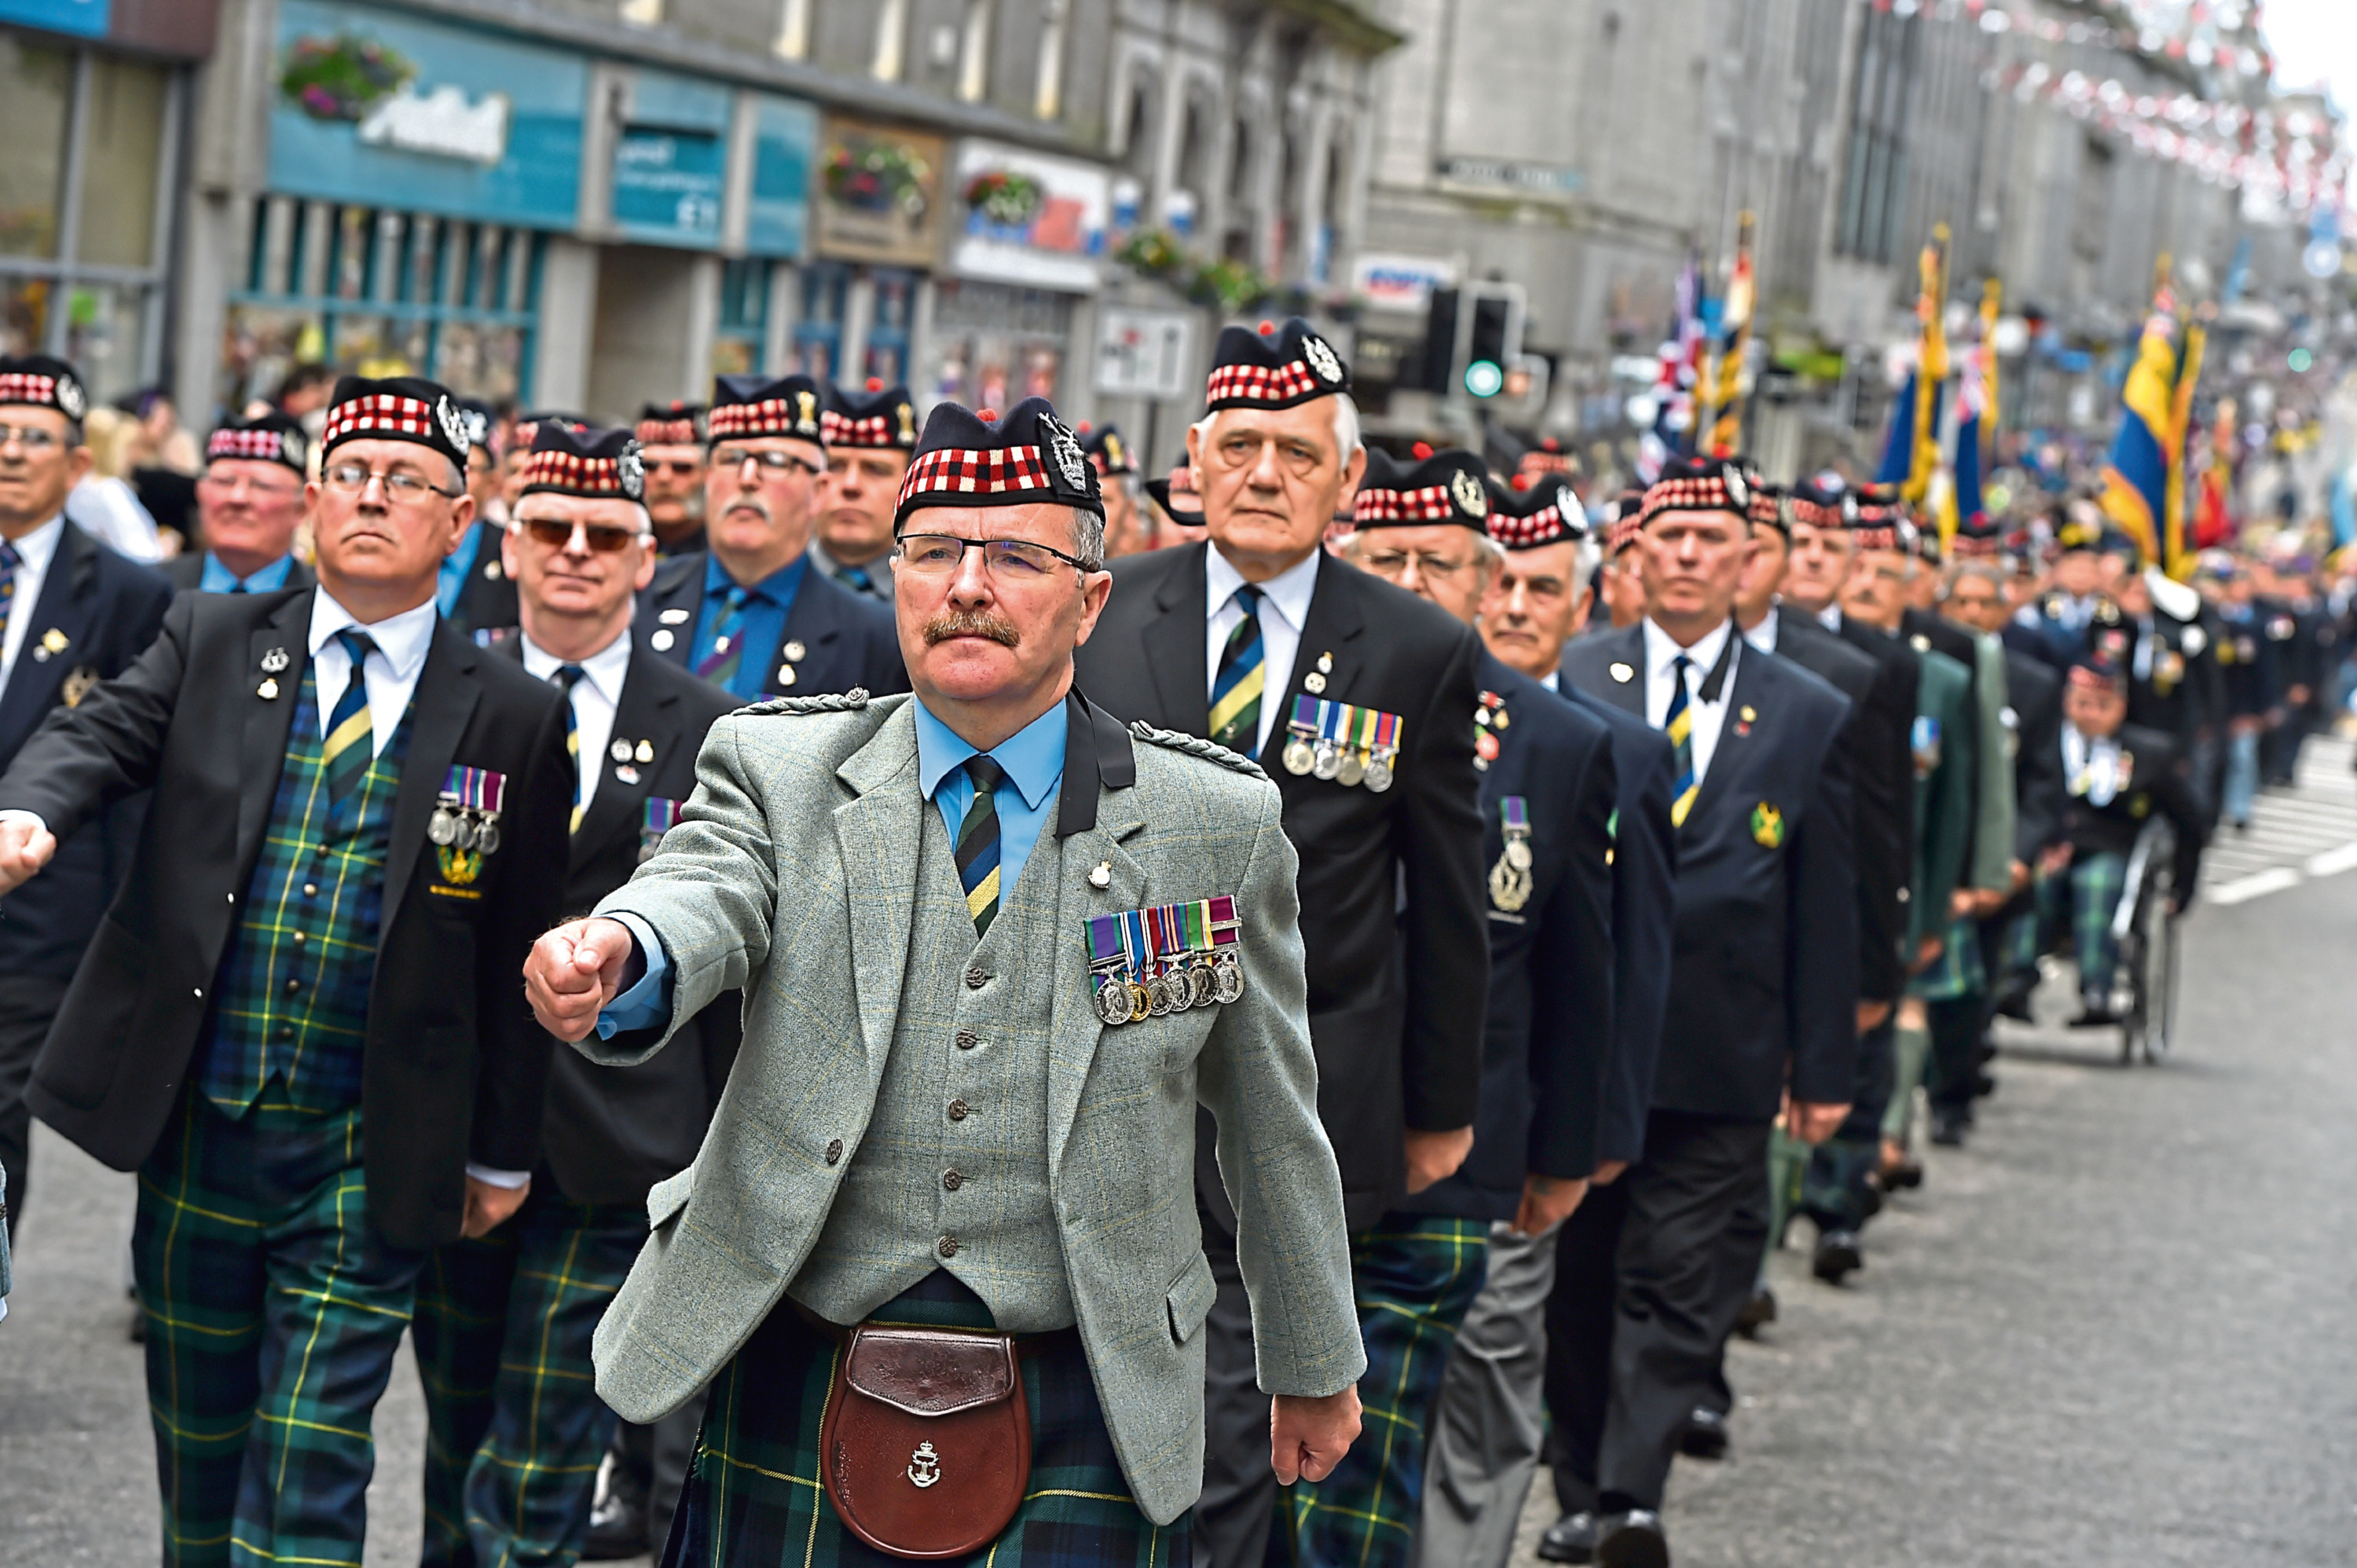 Aberdeen Armed Forces Day 2017.